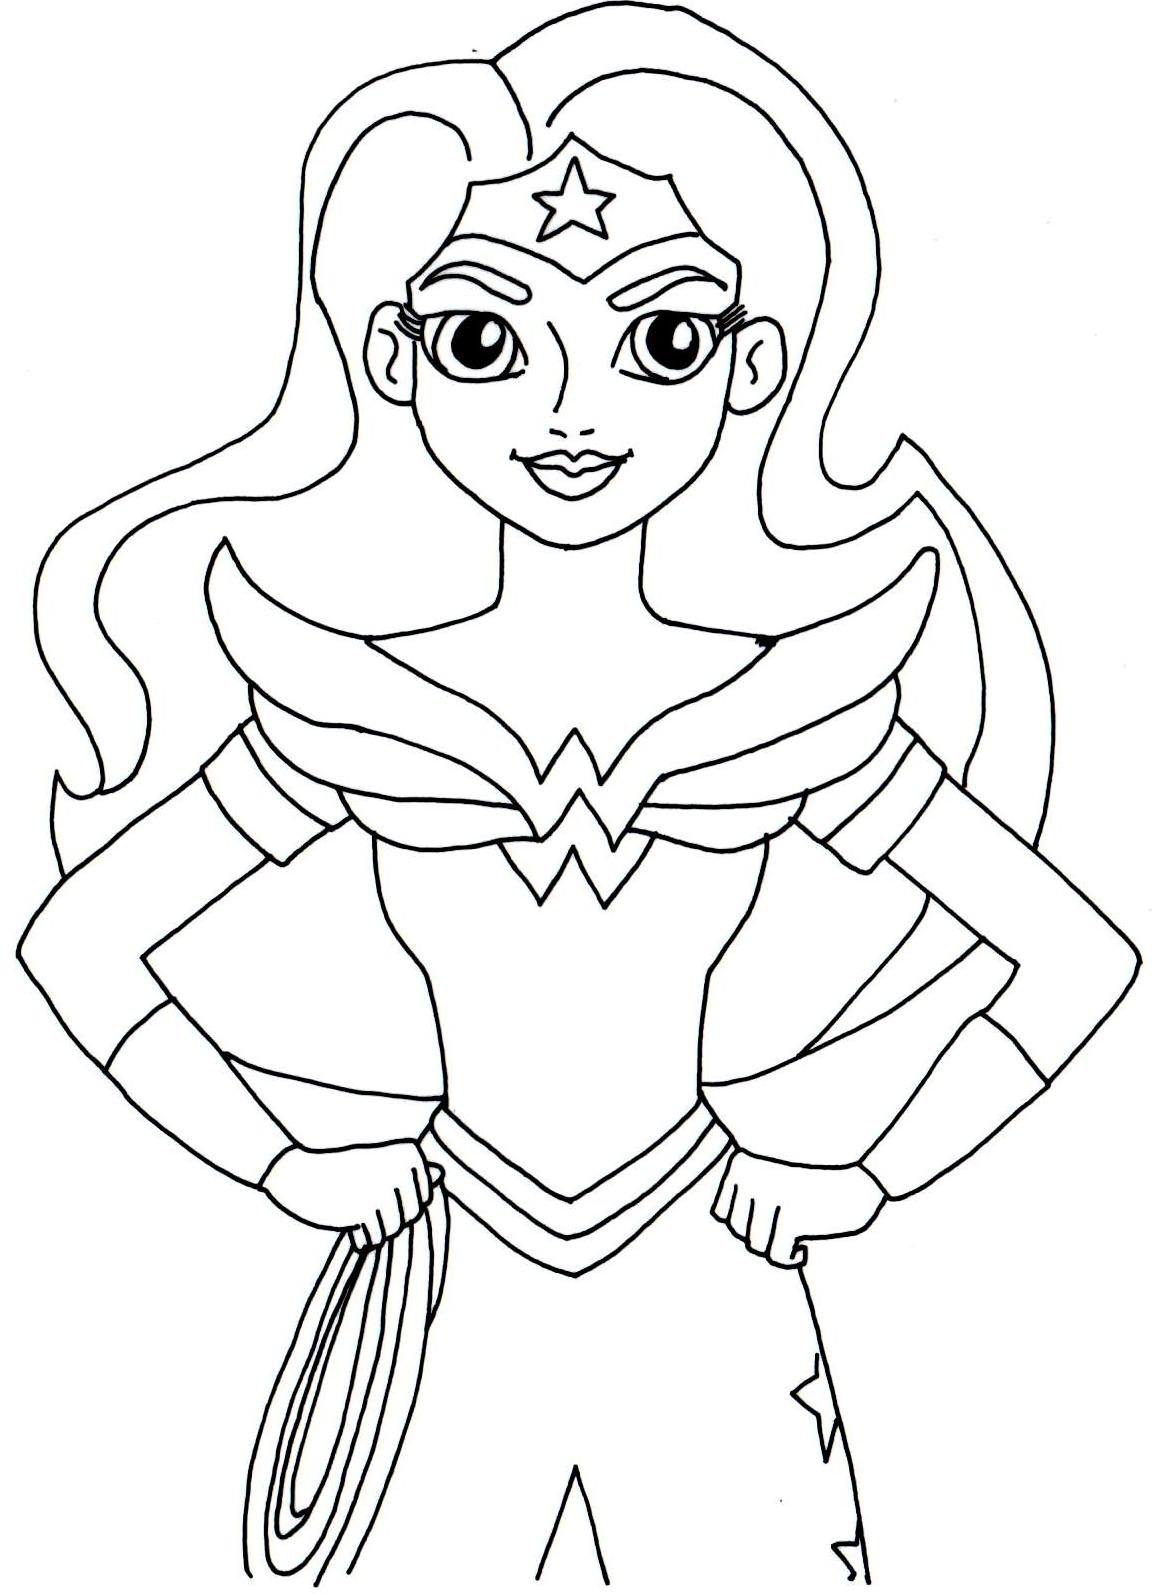 wonder woman coloring pages - photo#2